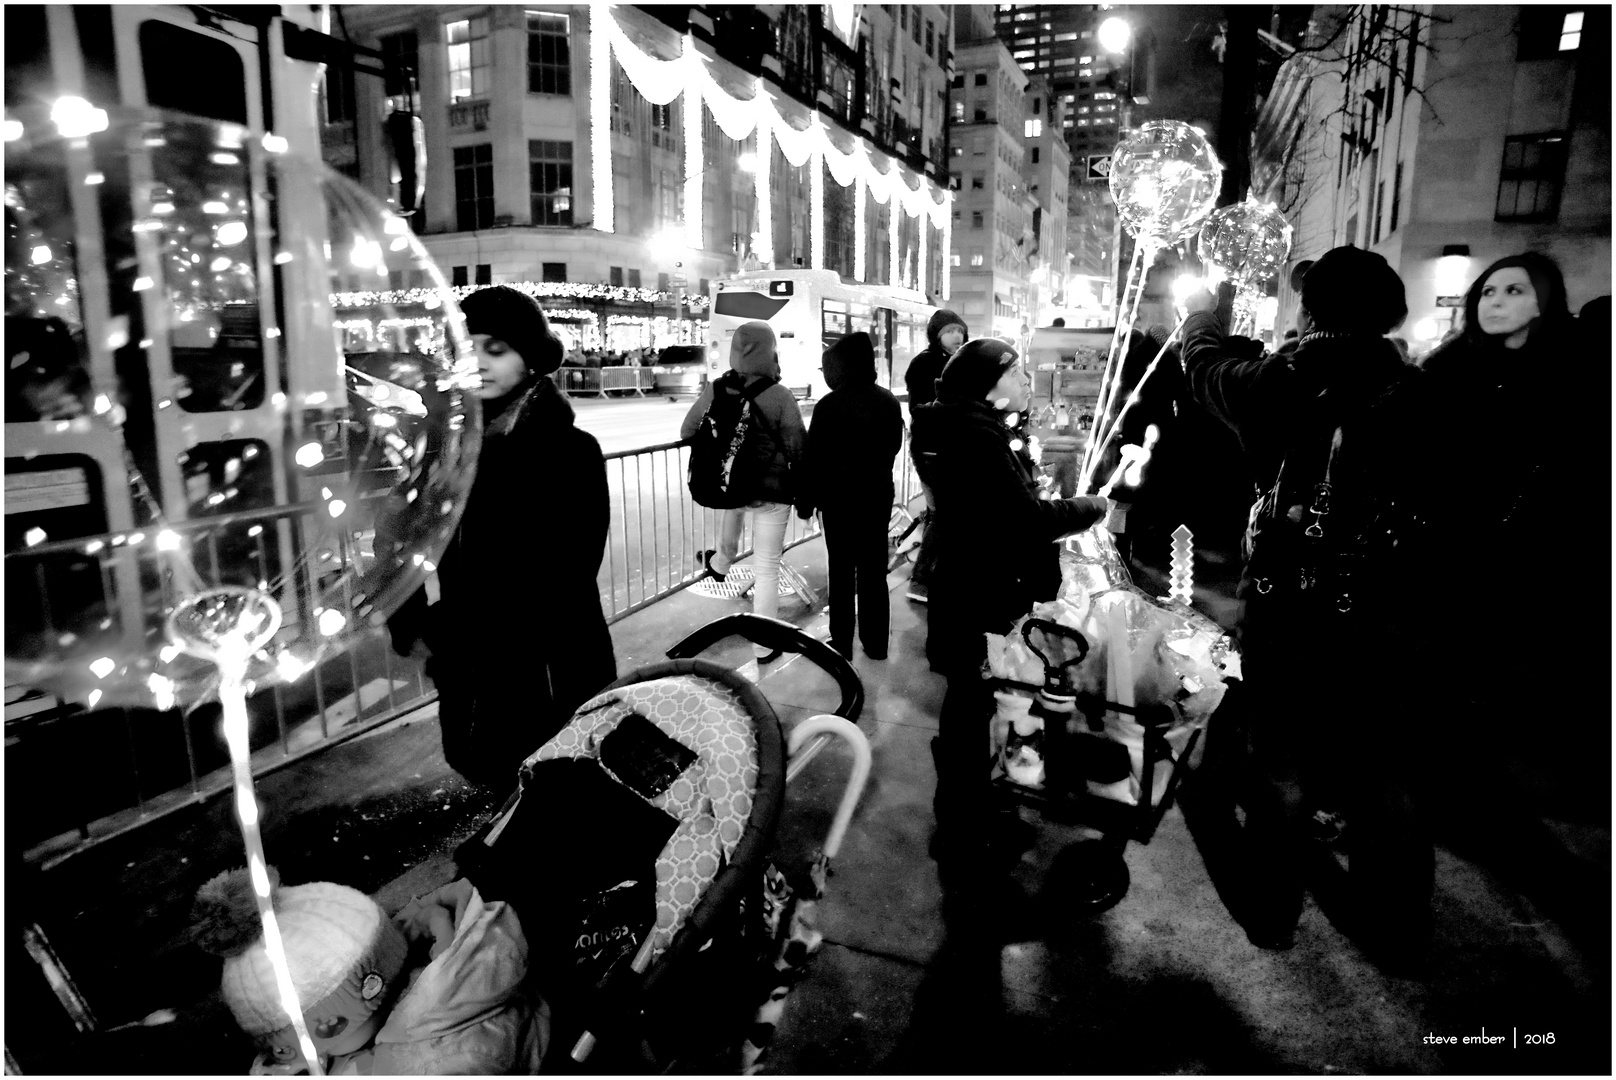 A More Intimate Holiday Season Light Show - a New York Moment